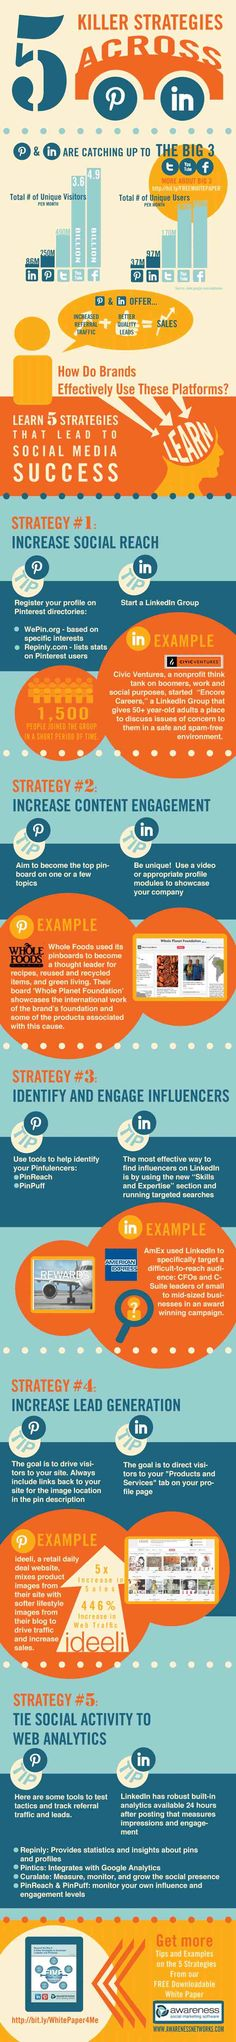 Beyond the Big 3: Strategies for Brands to Dominate Pinterest and LinkedIn (Infographic)